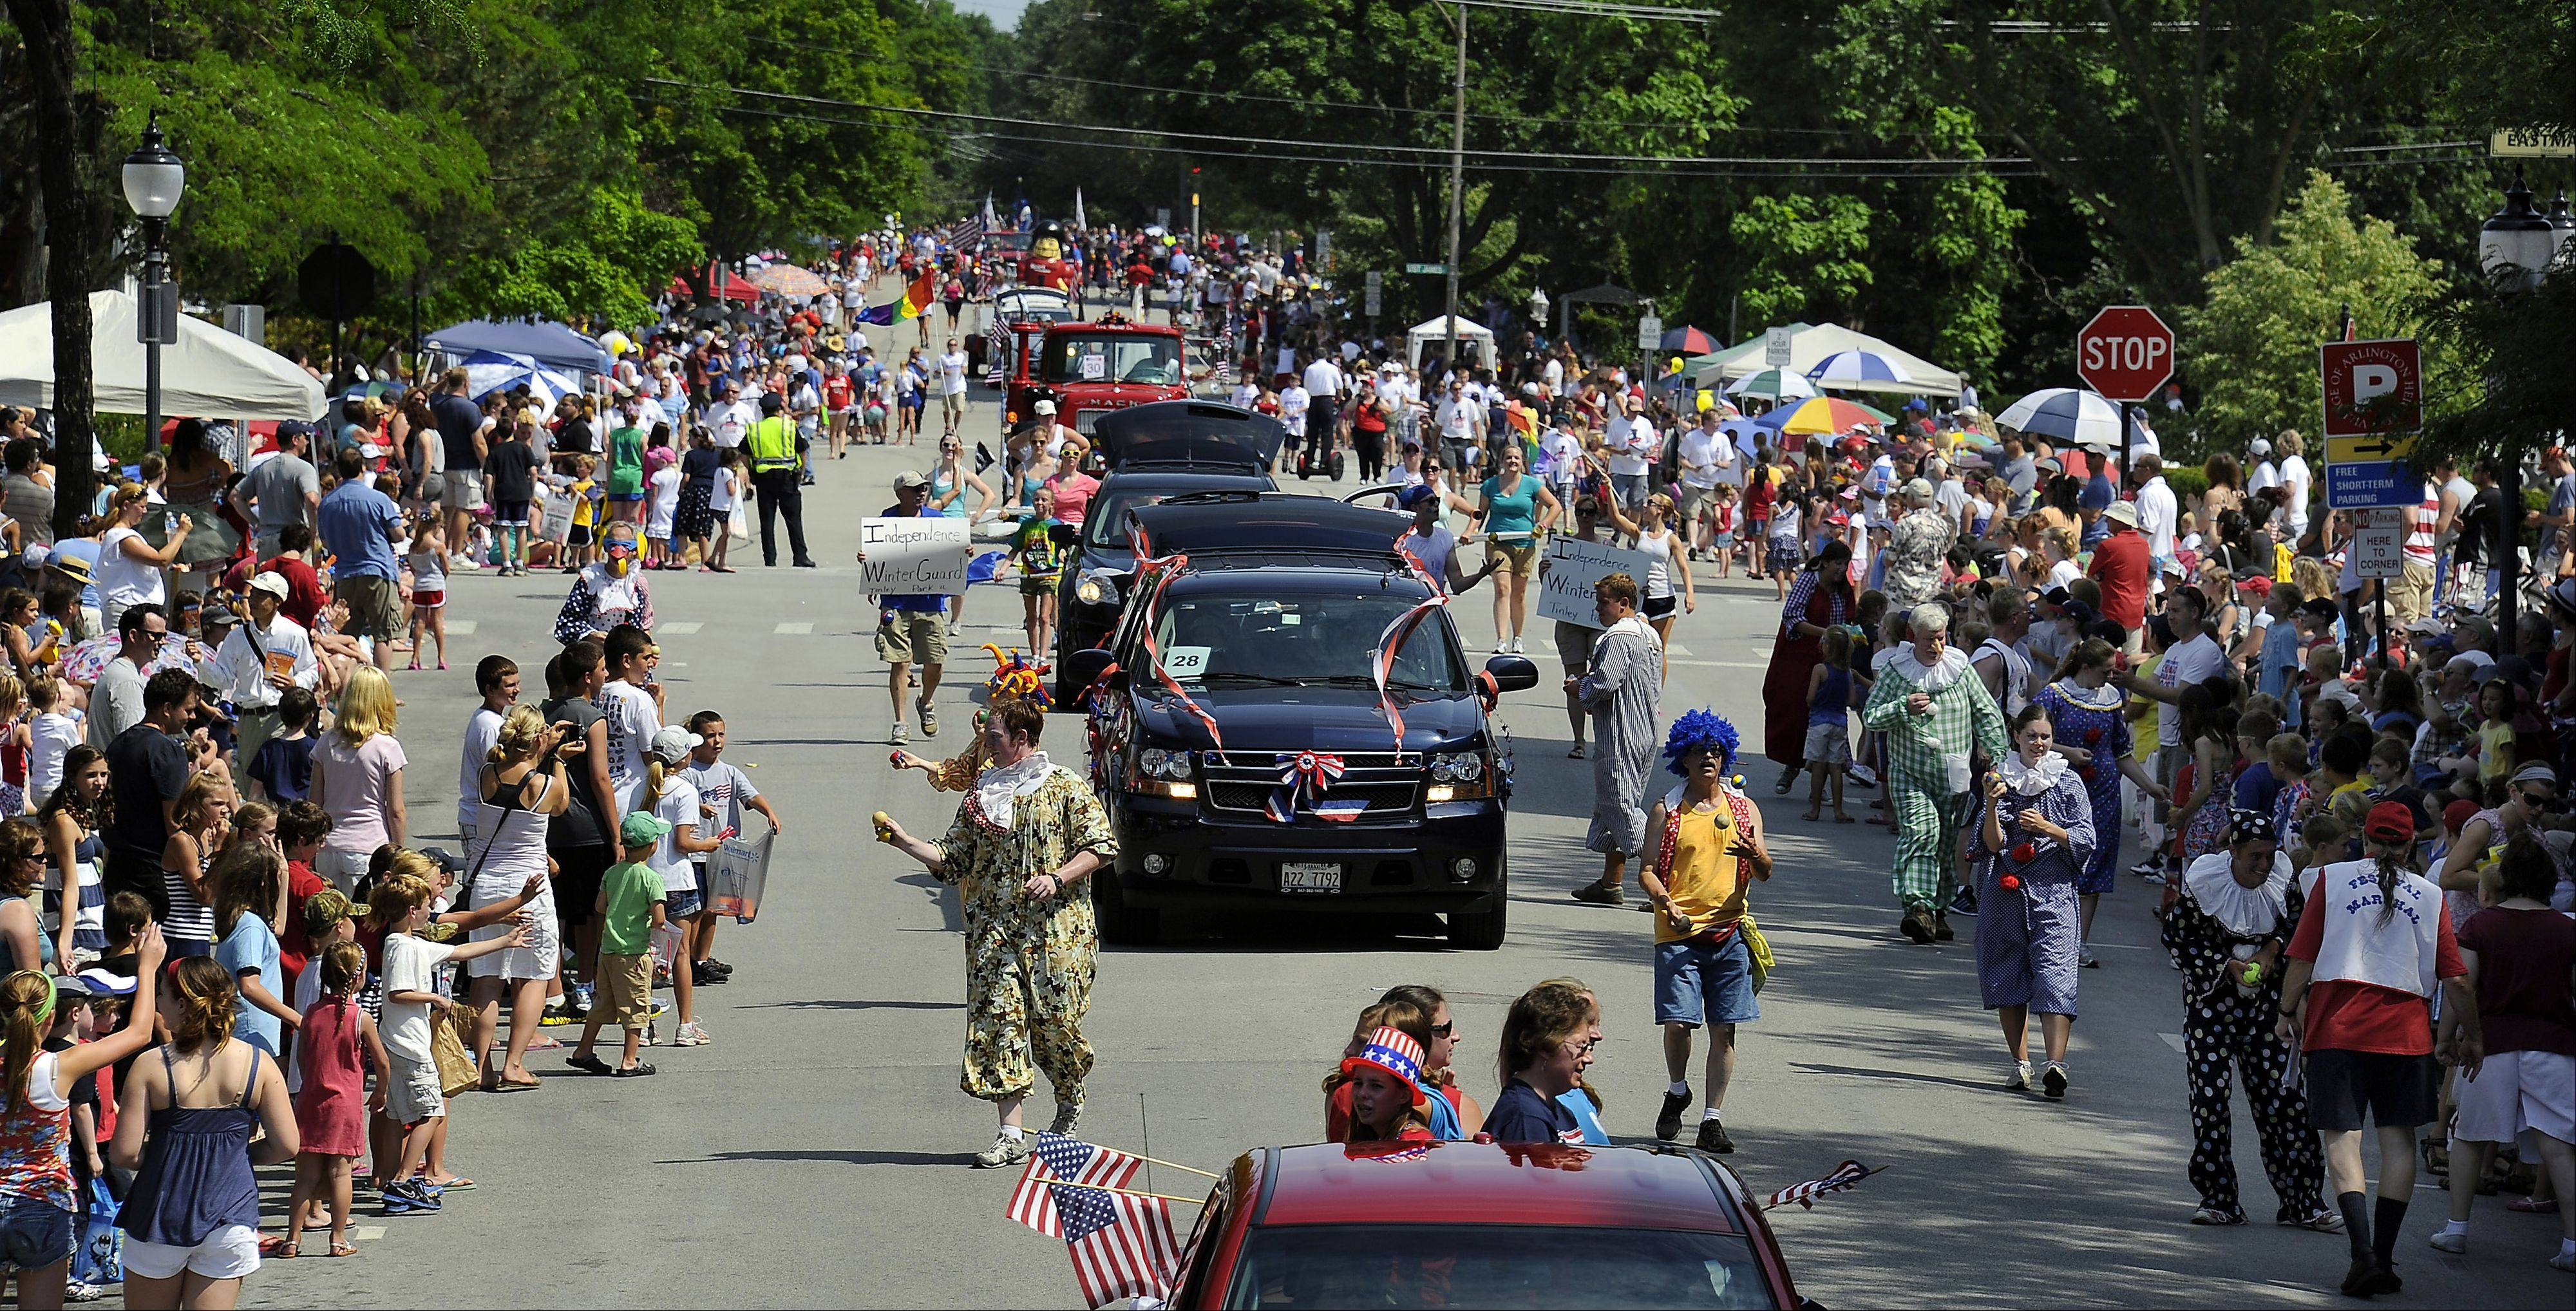 A mass of humanity floods the streets during the Fourth of July parade on Wednesday in Arlington Heights.